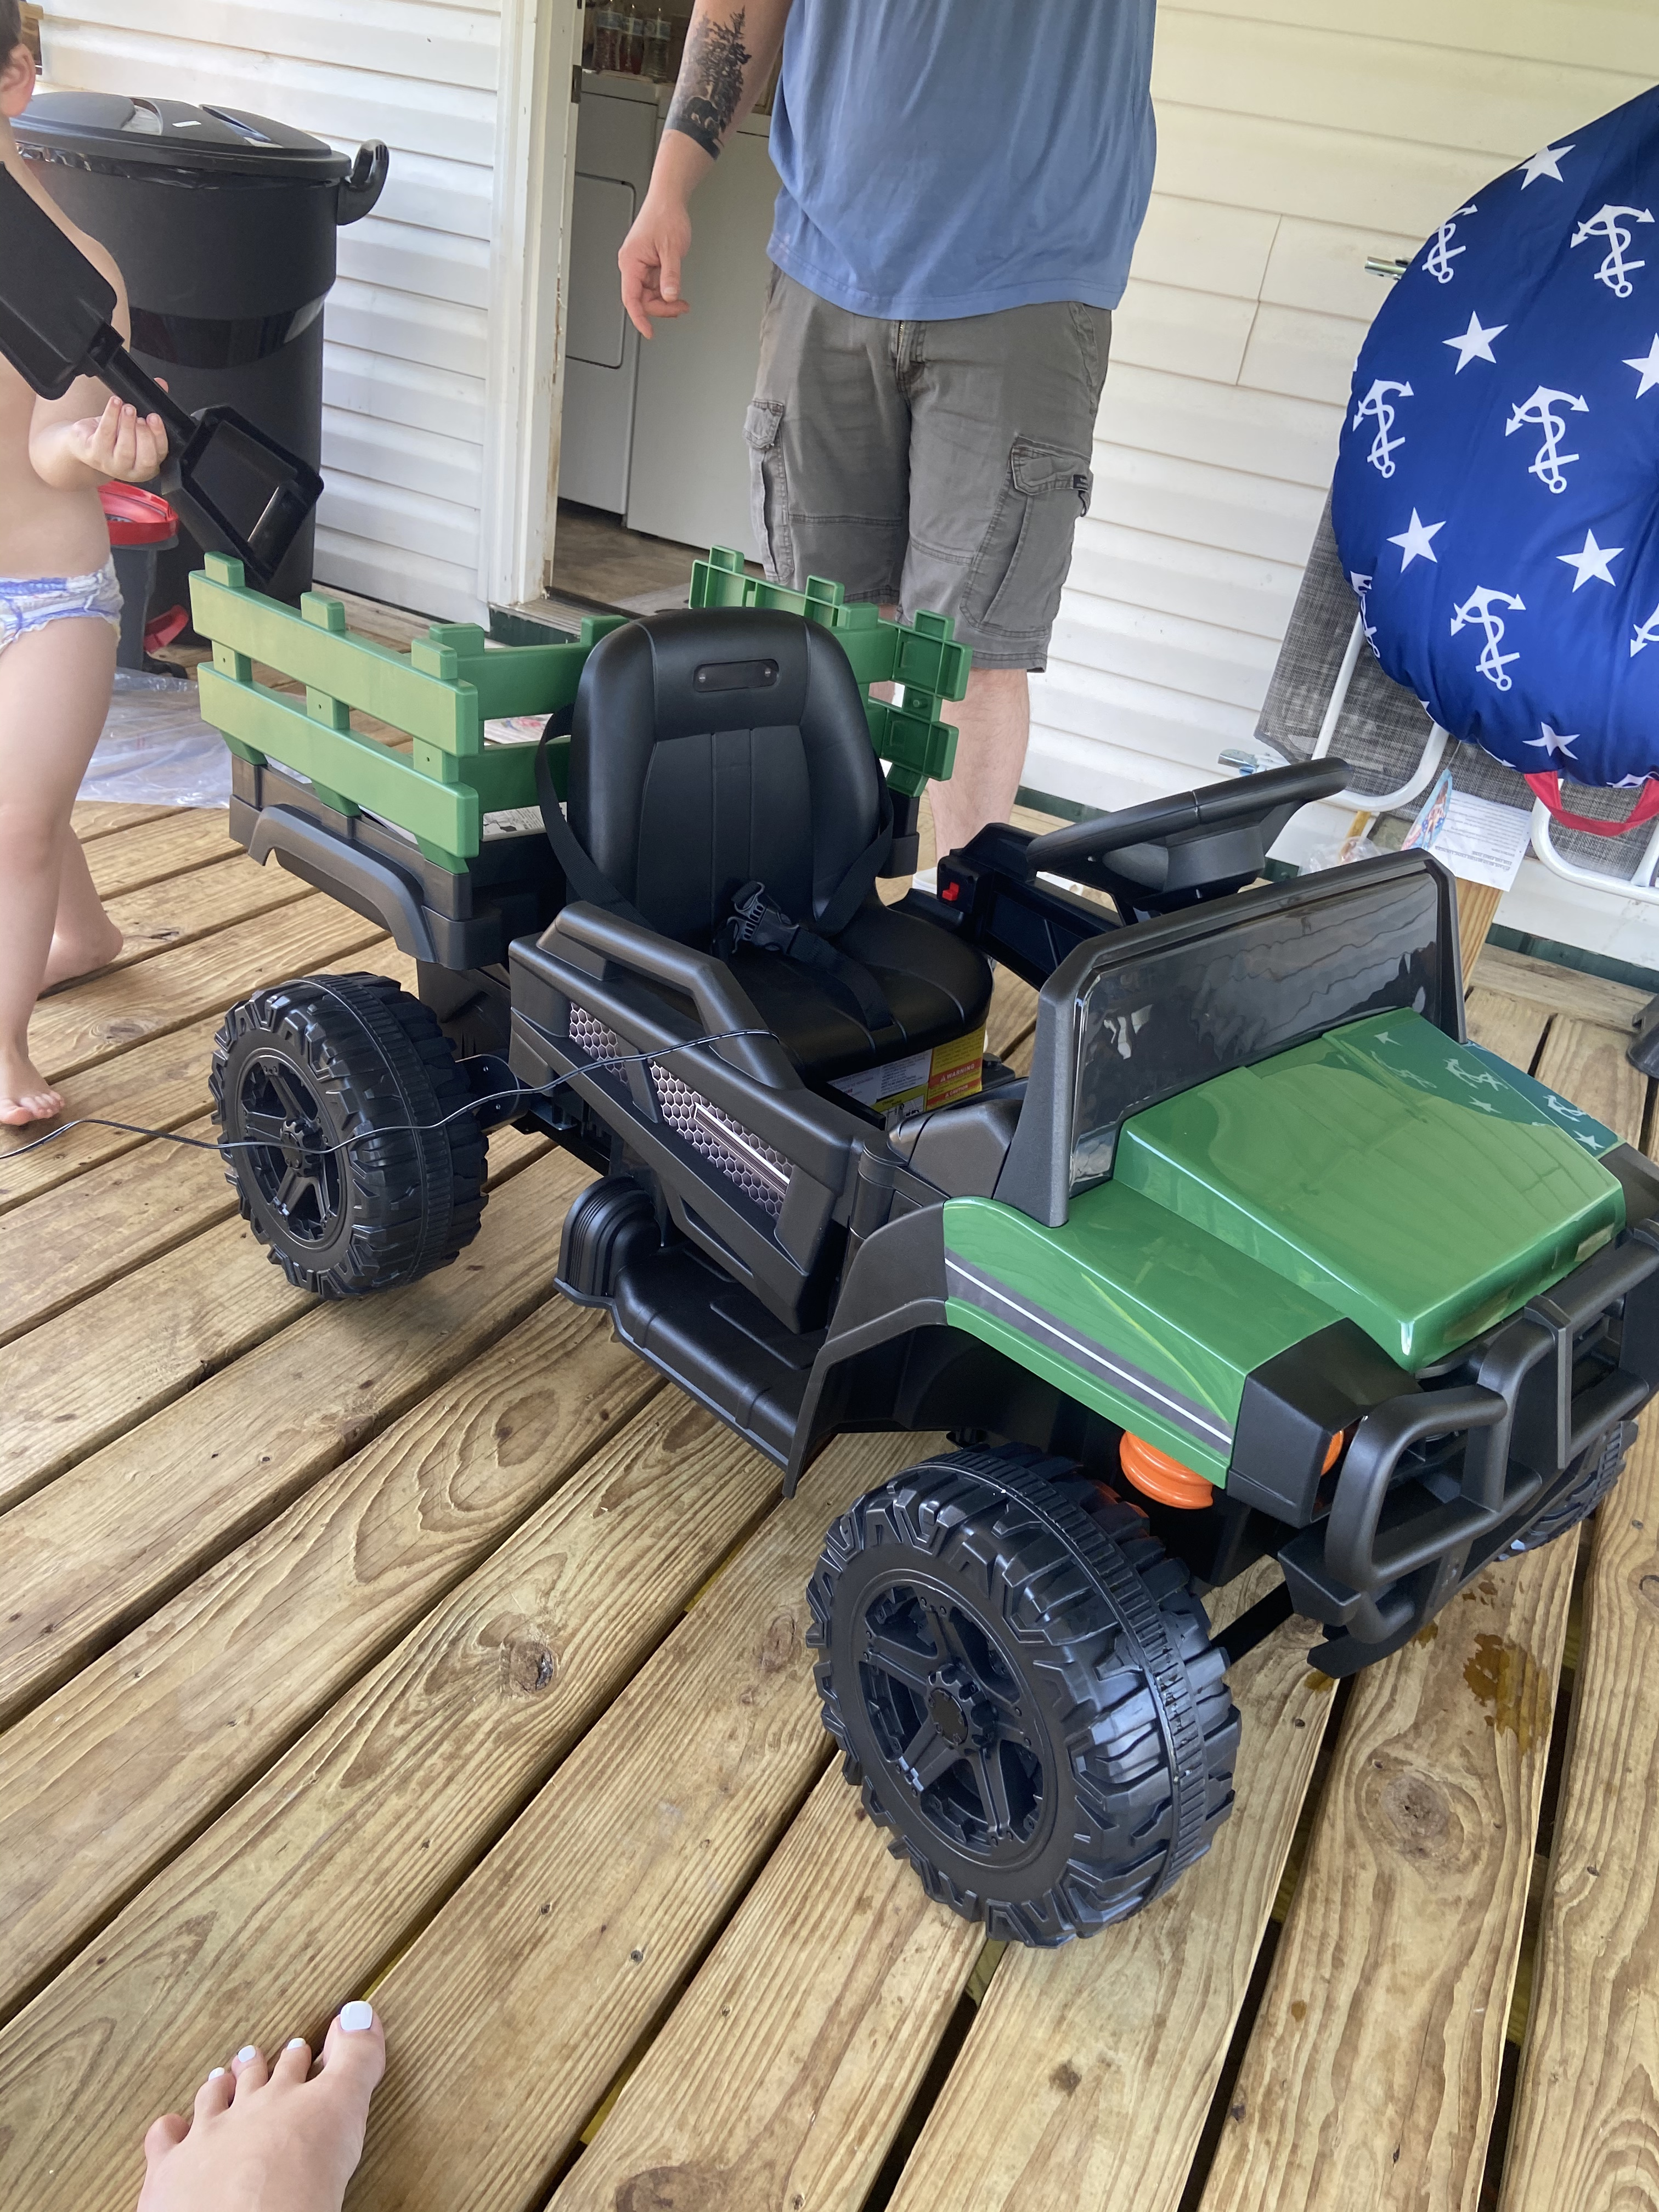 12V Battery Powered Kids Ride on Tractor with Remote Control, Army Green photo review